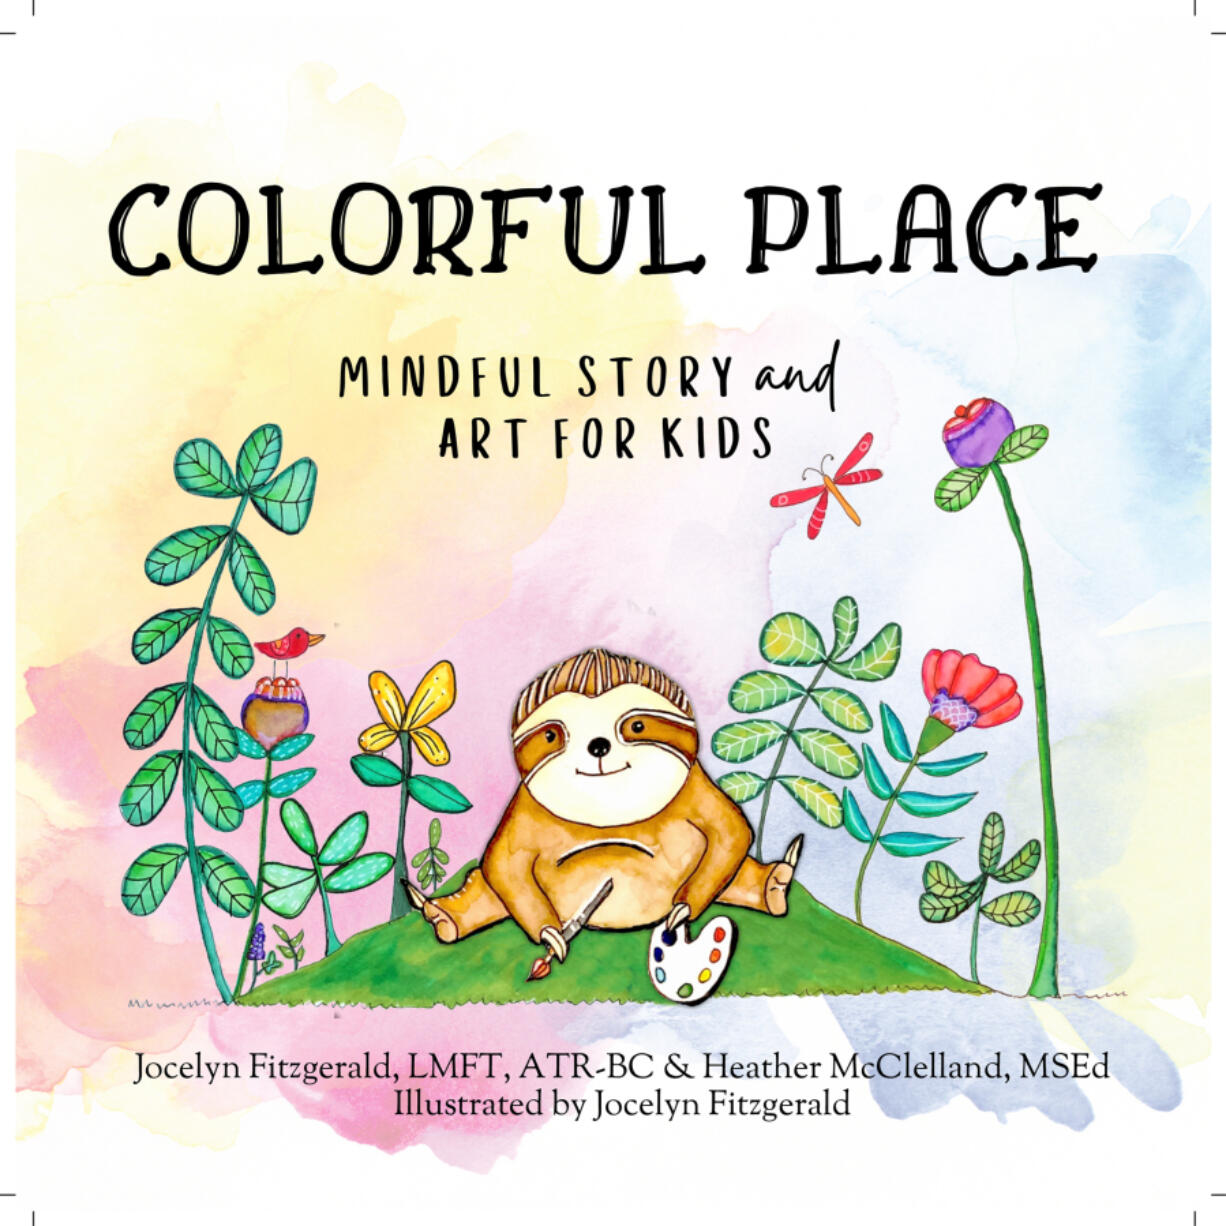 Jocelyn Fitzgerald and Heather McClelland have co-authored a book to help kids cope with anxiety. Fitzgerald, a board-certified art therapist, illustrated the book.